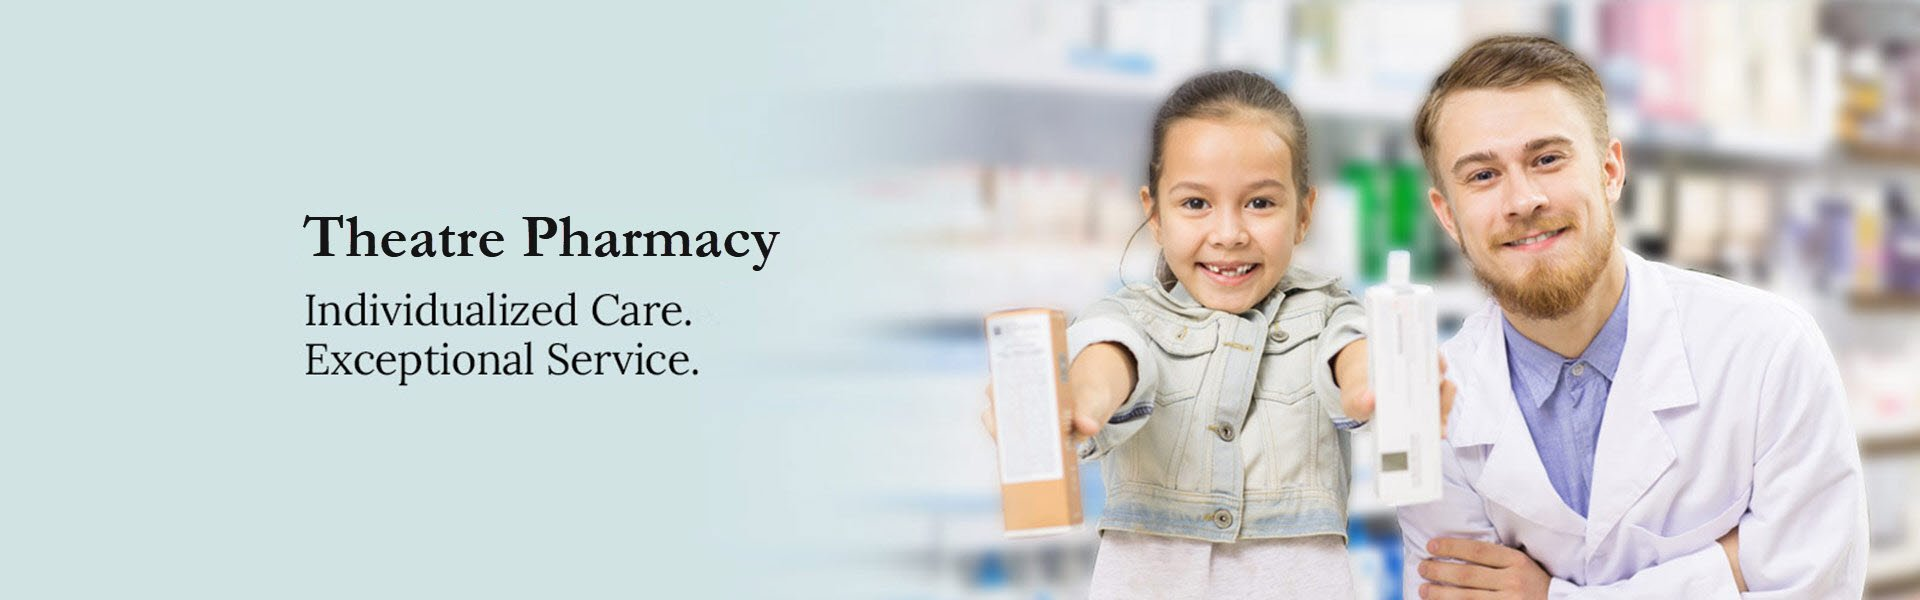 theatre pharmacy customized care exceptional service